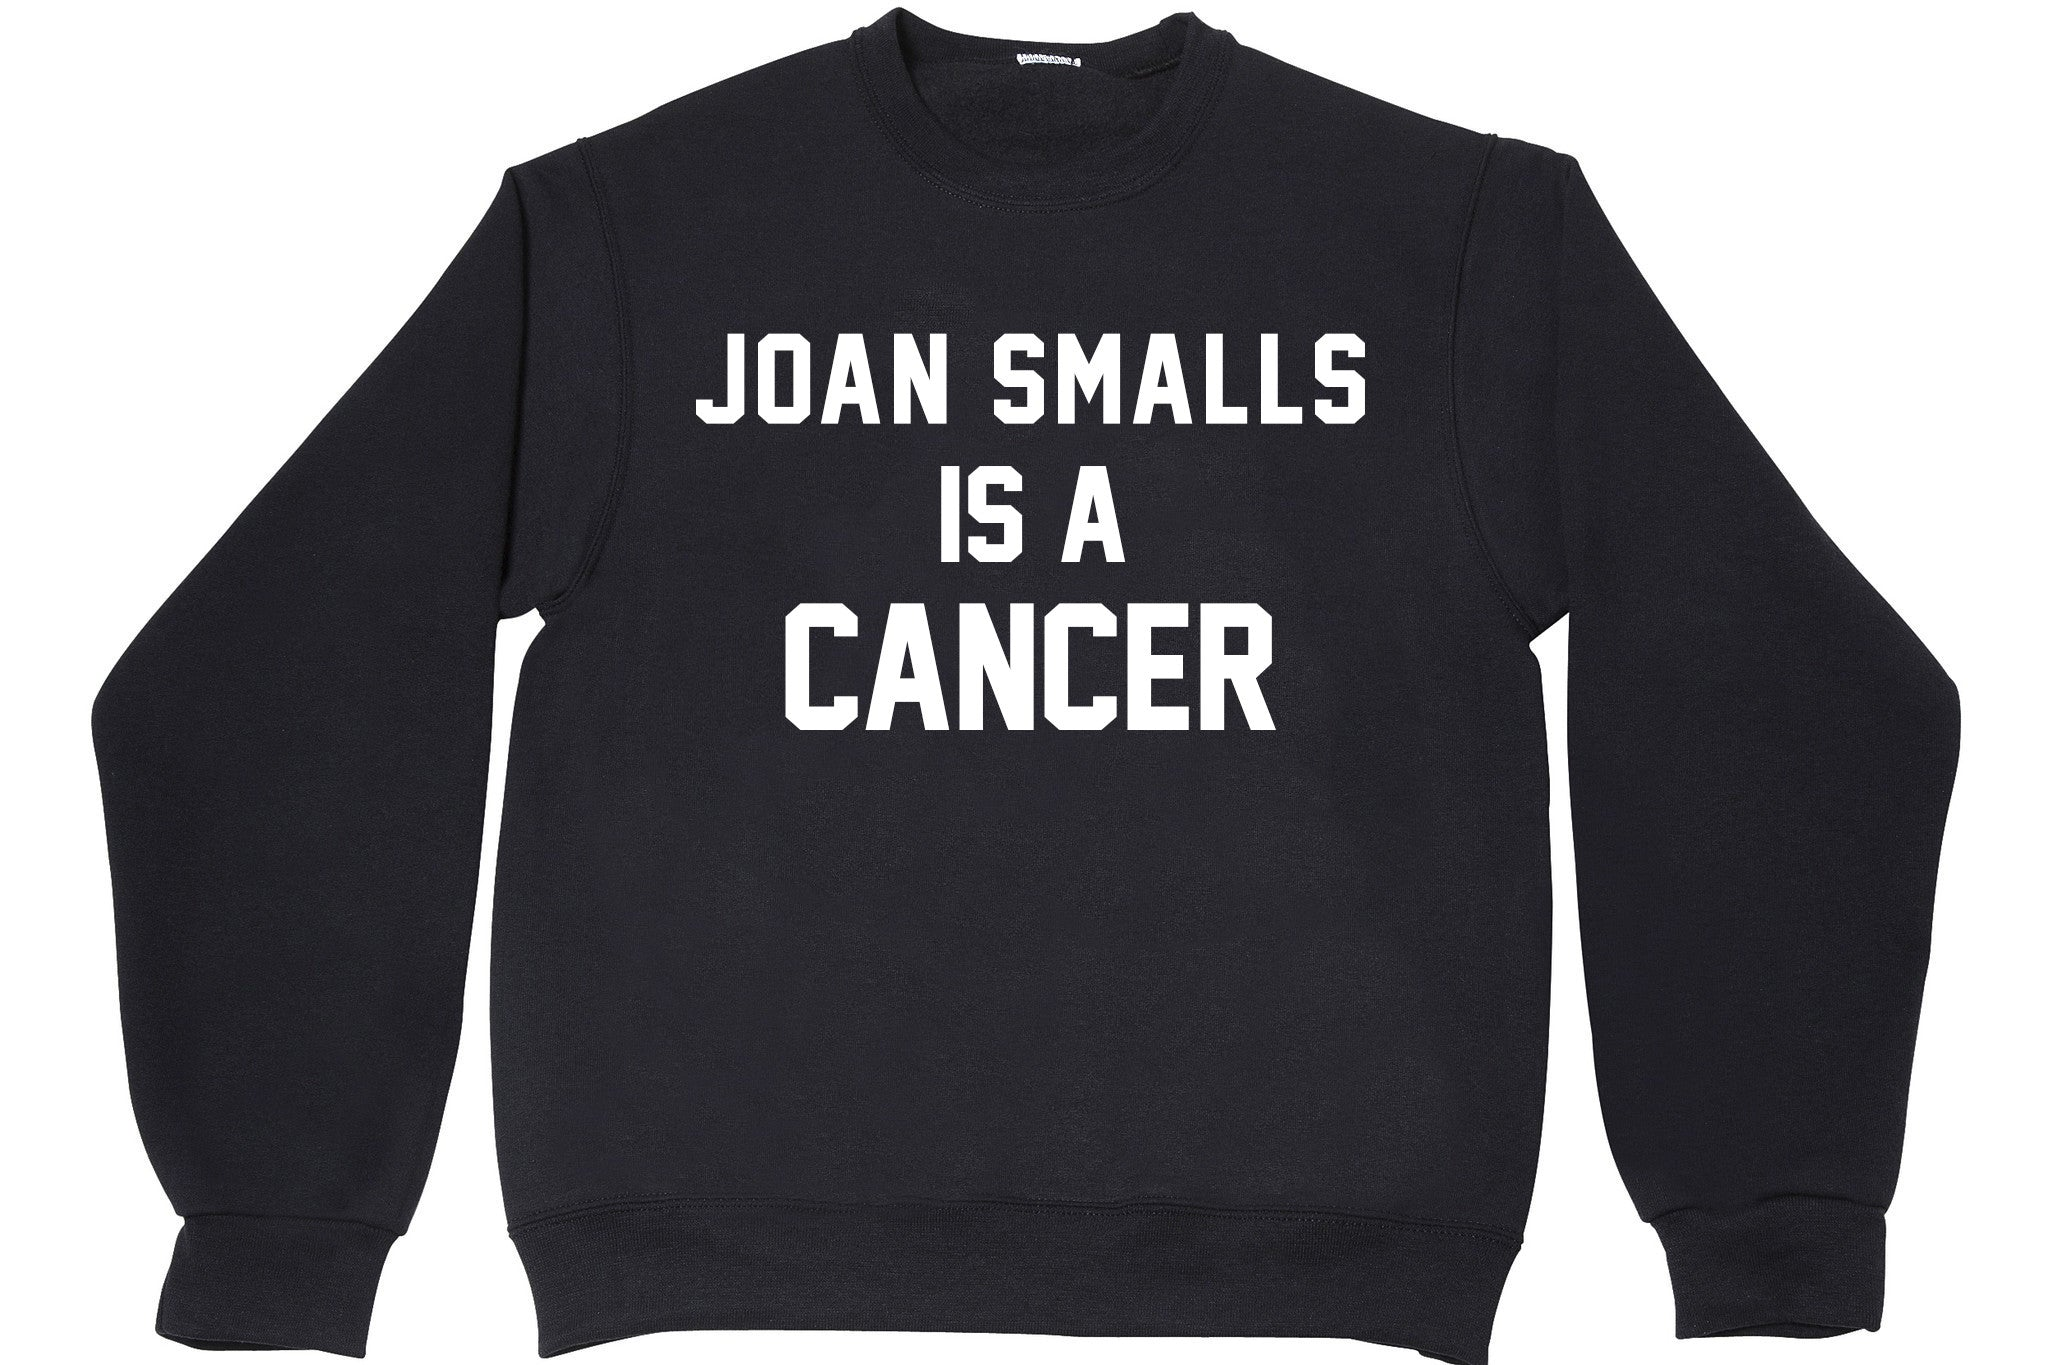 JOAN SMALLS IS A CANCER